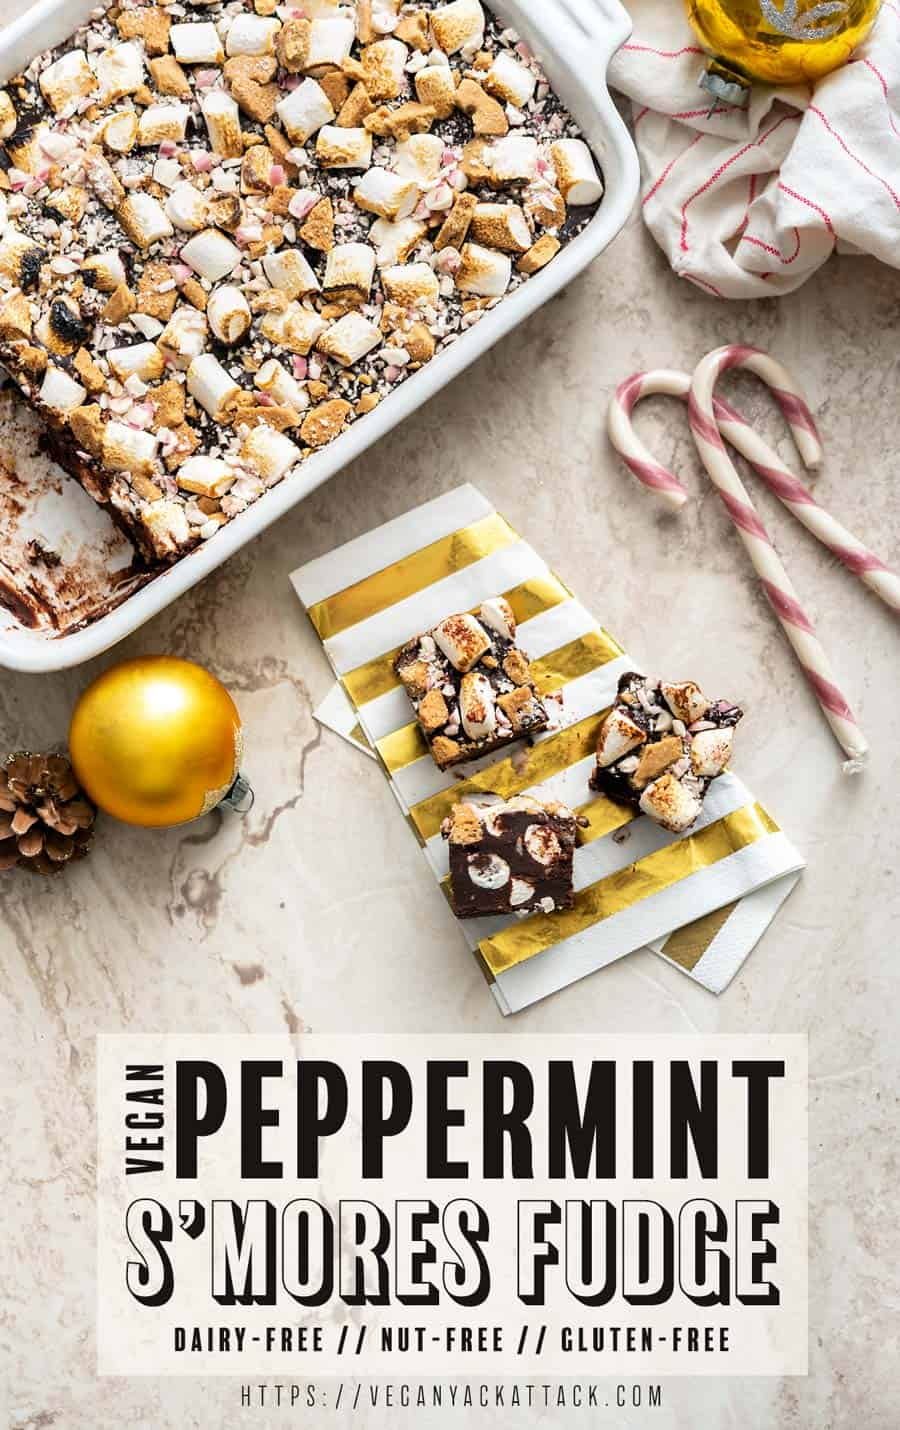 Pieces of vegan peppermint s'mores fudge cut out of the dish and on a napkin, with recipe title text